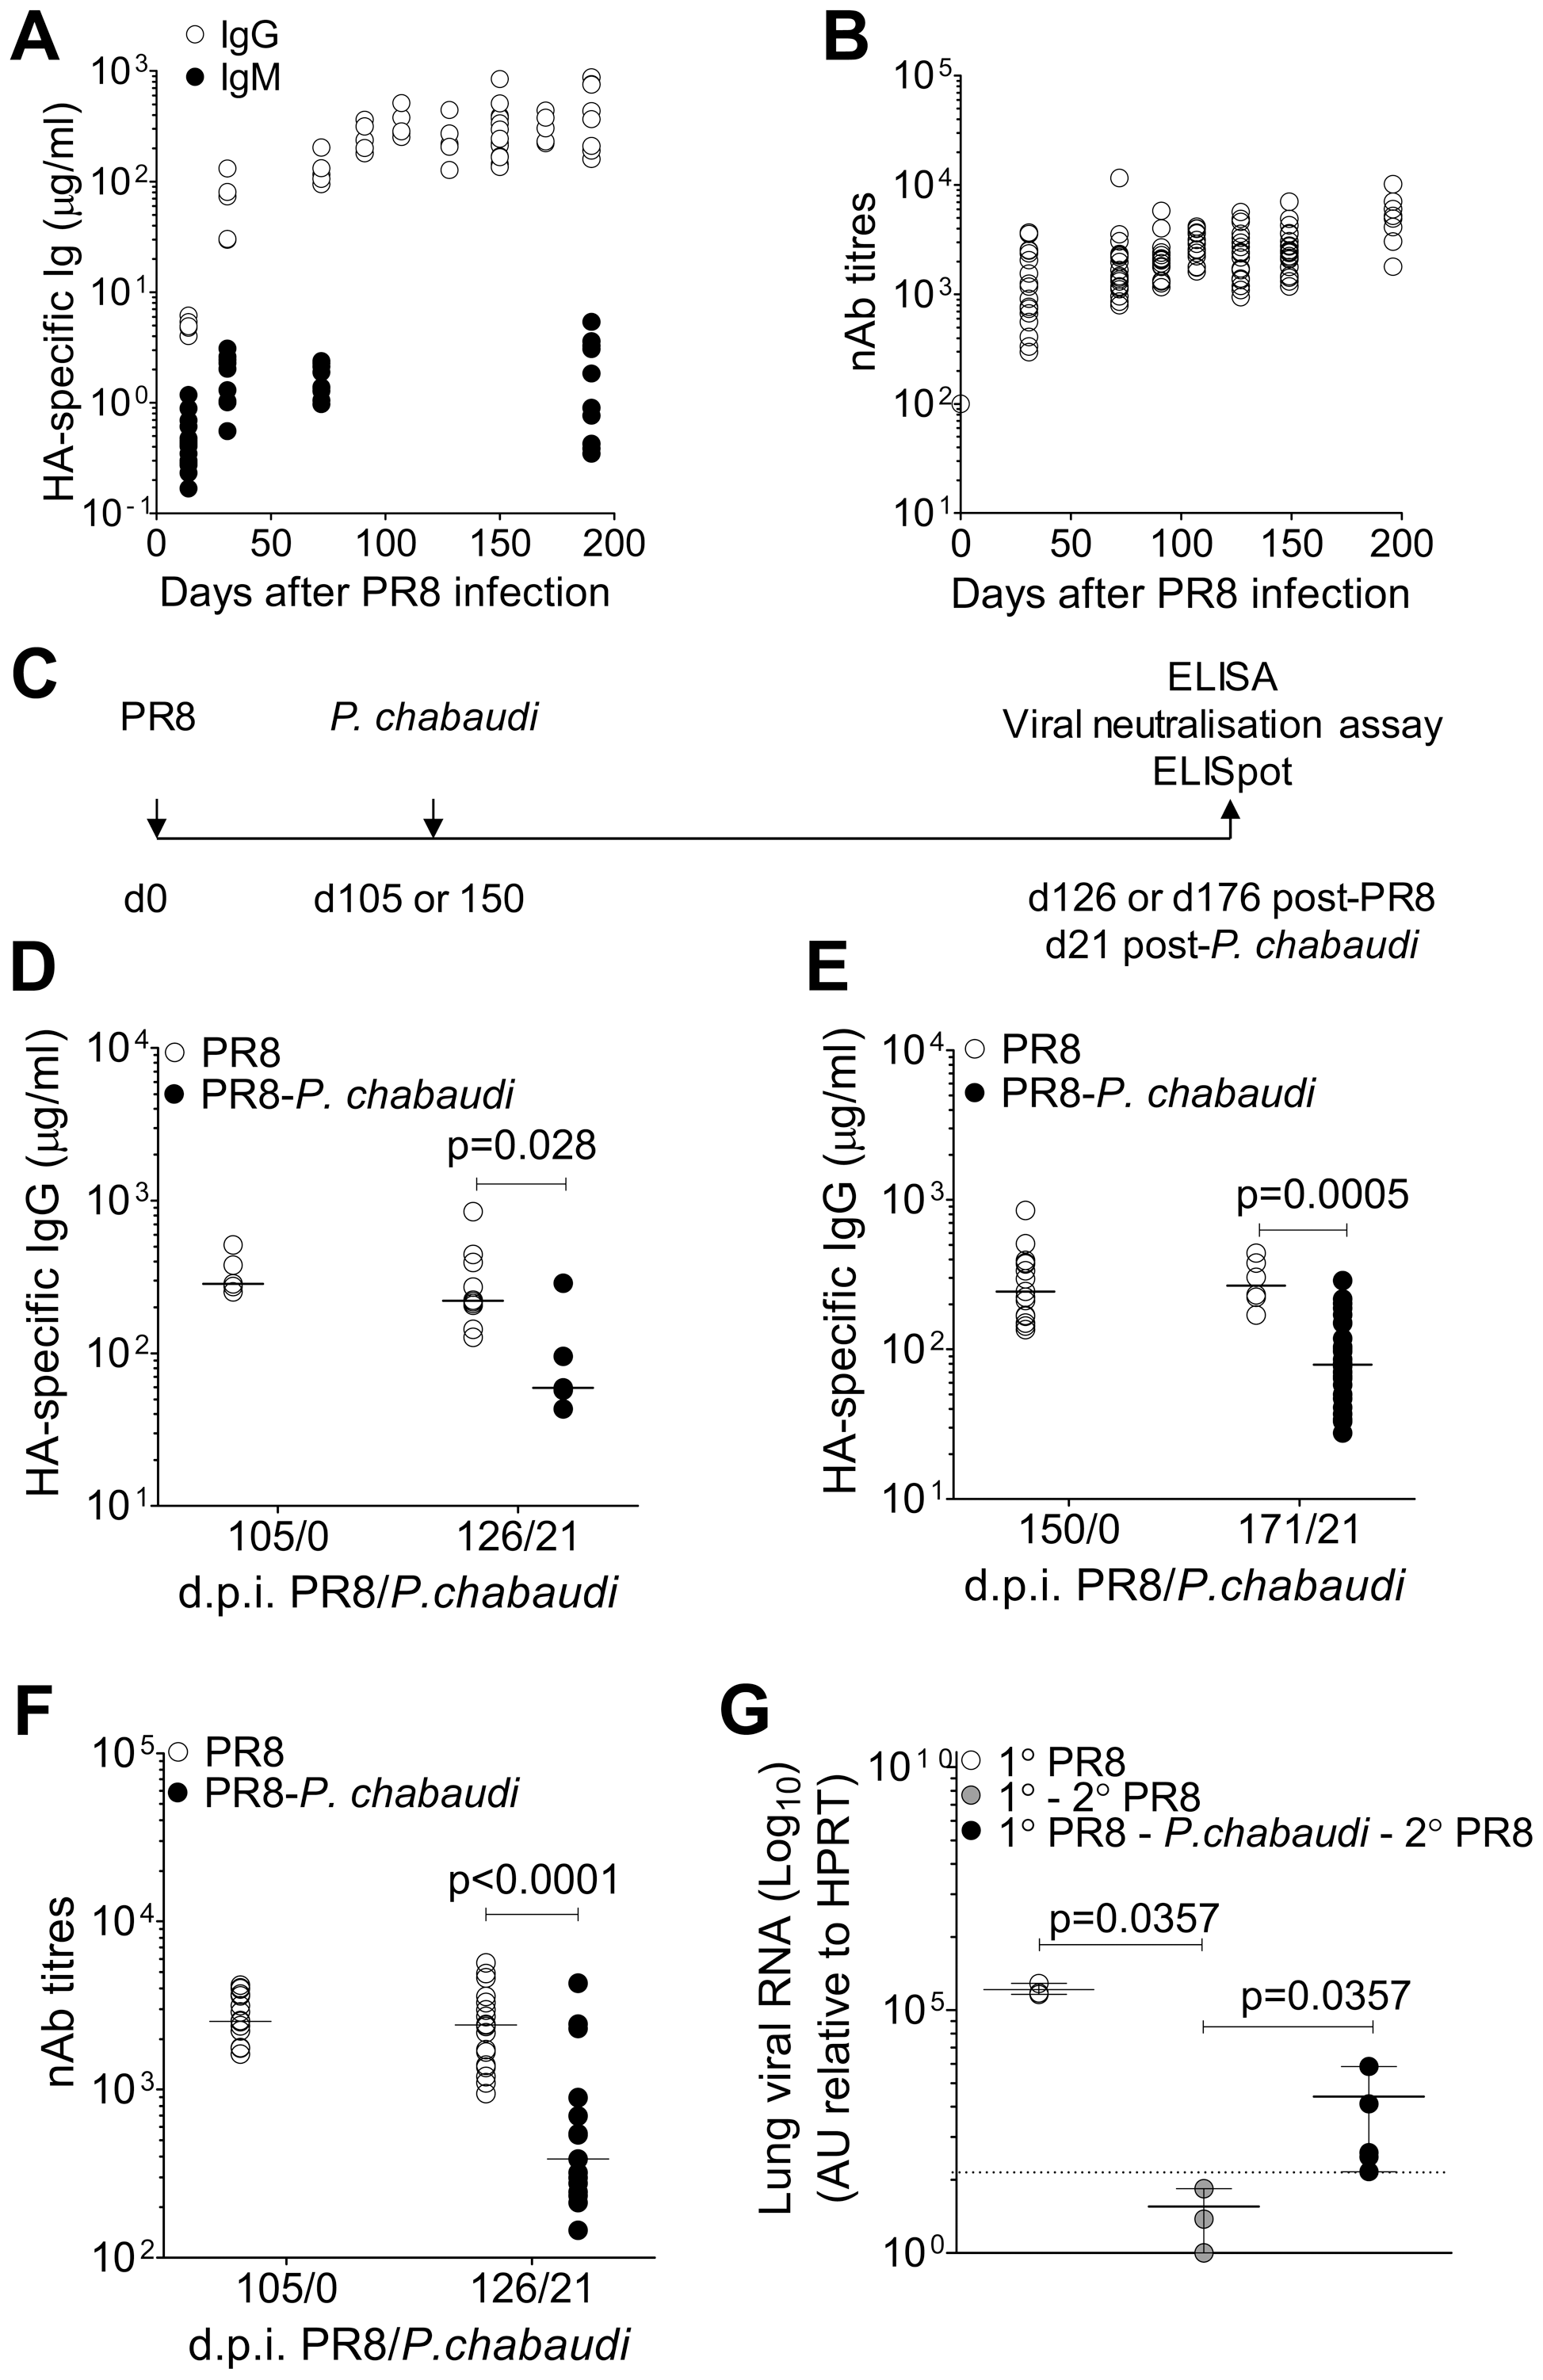 Loss of pre-established Influenza-specific humoral immunity after infection with <i>P. chabaudi</i>.